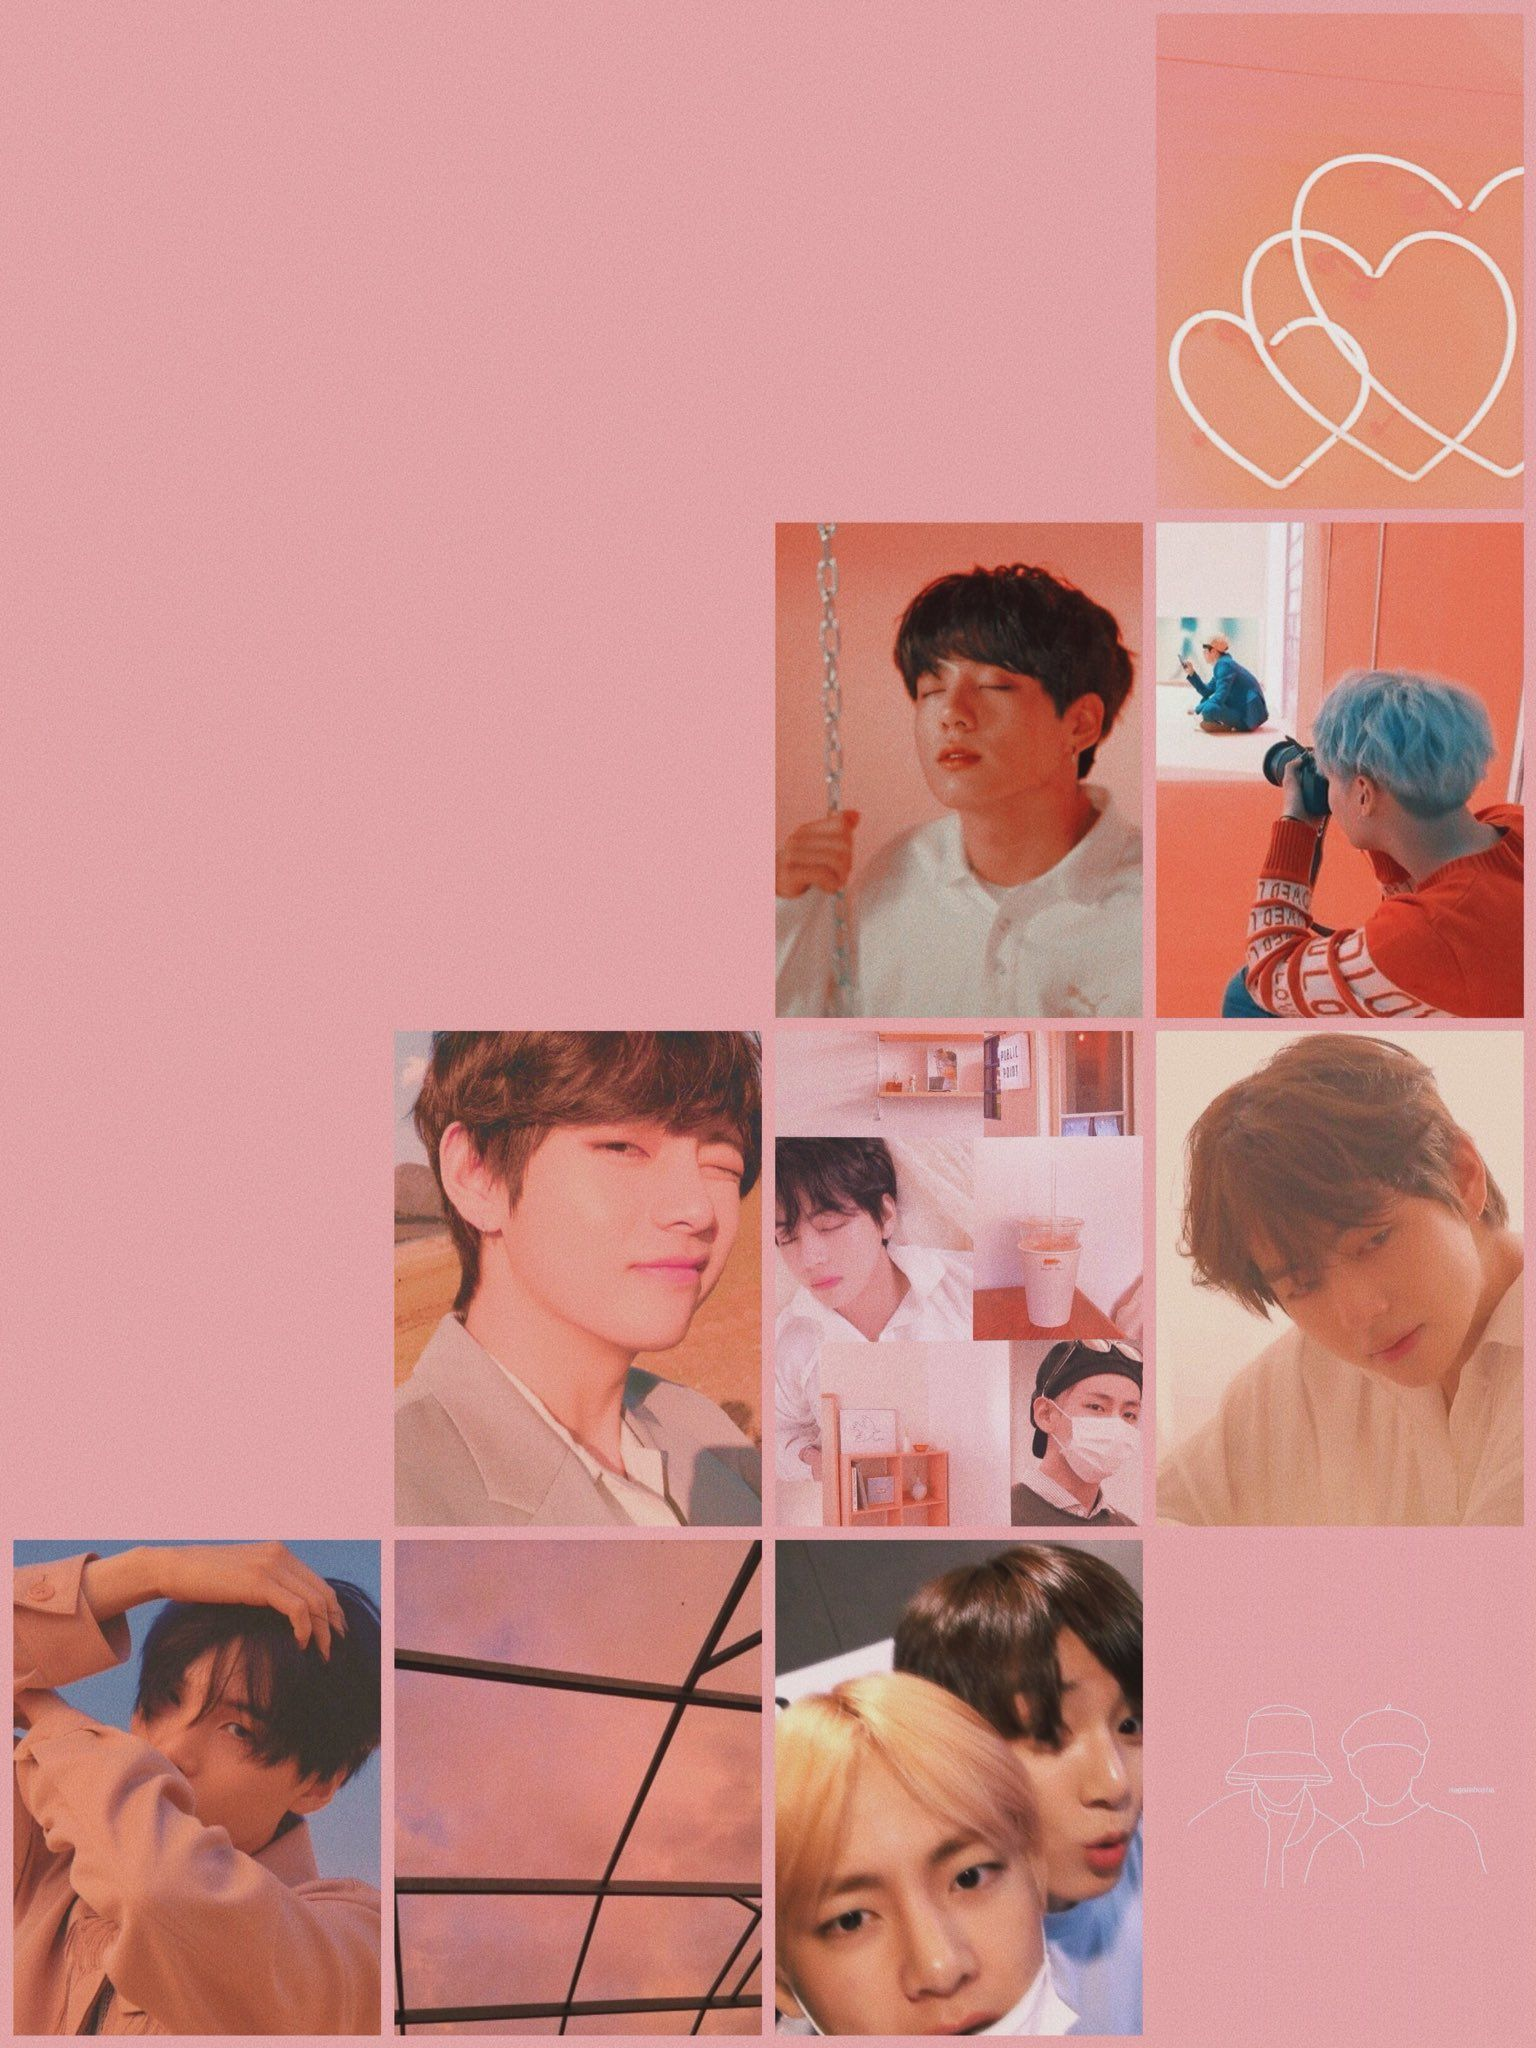 ♡ BTS wallpapers ♡ on Twitter